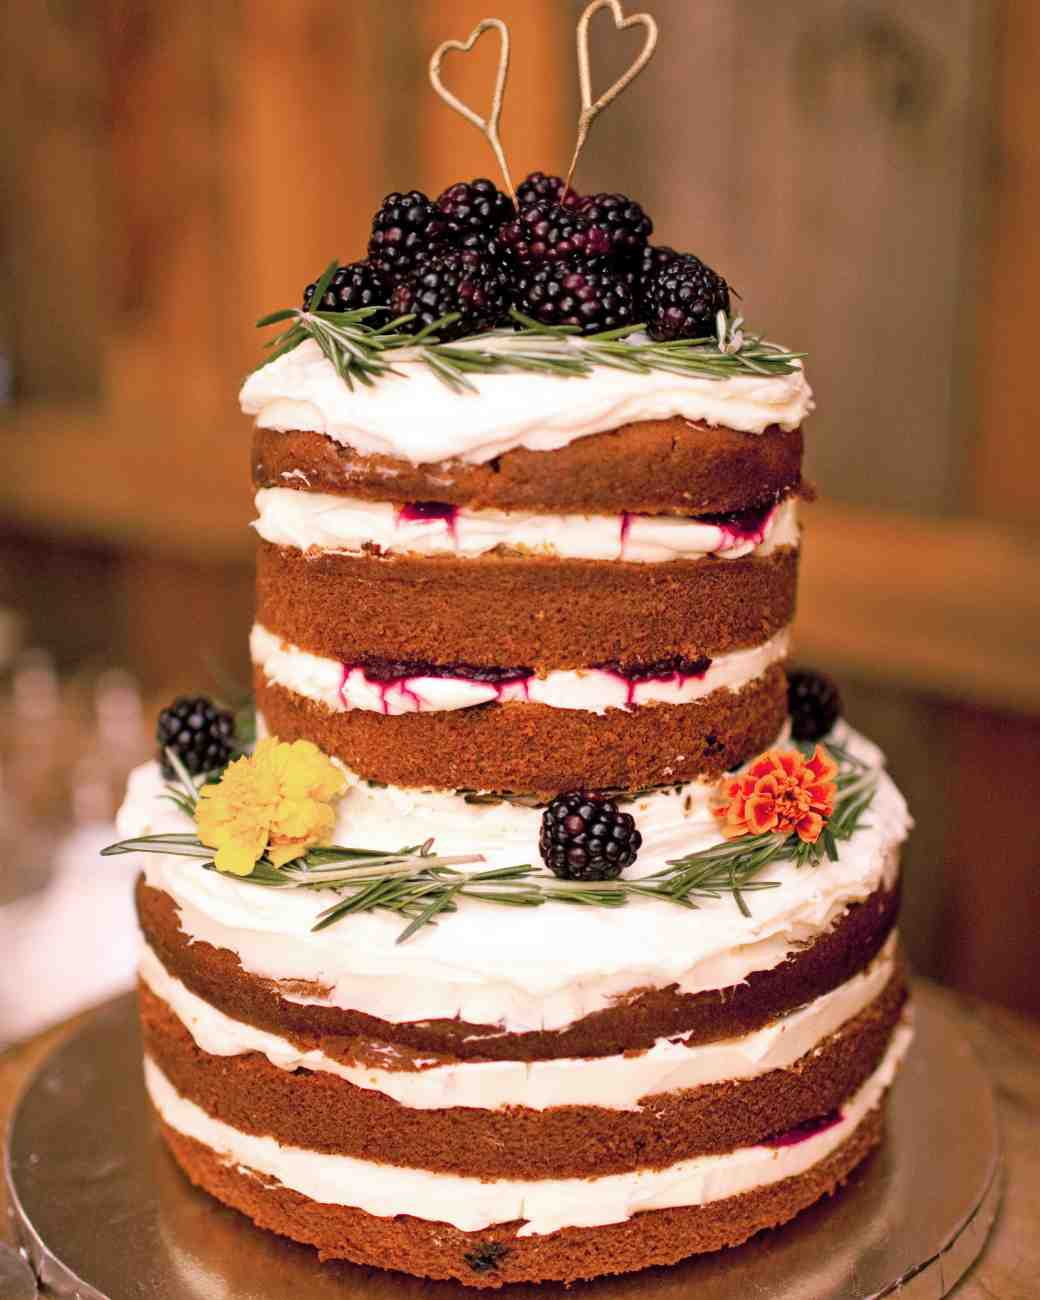 Country wedding cakes pictures - Pumpkin Blackberry Wedding Cake For Fall